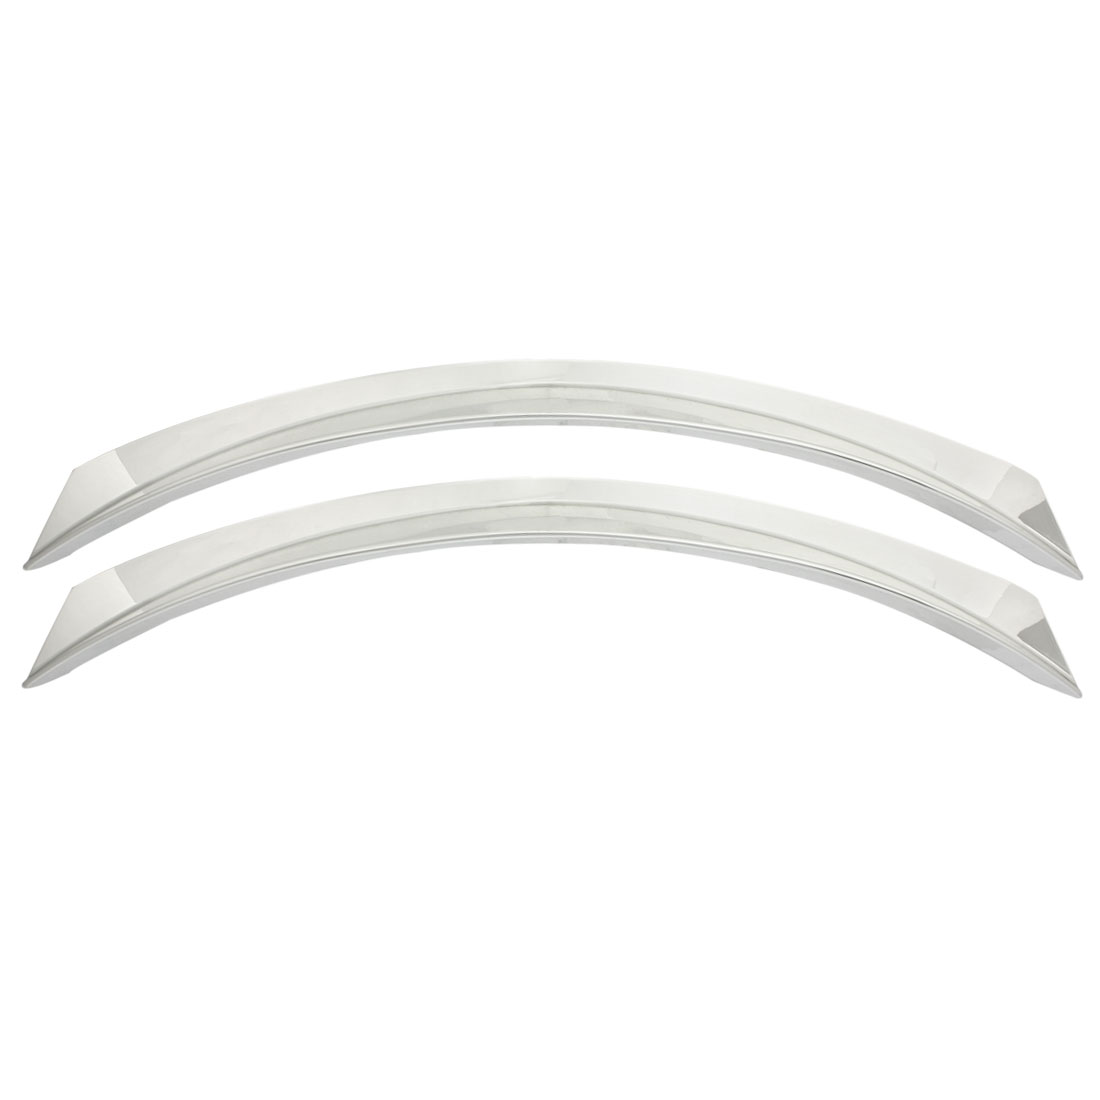 2 Pcs Silver Tone Plastic Car Wheel Arch Eyebrow Strip Line